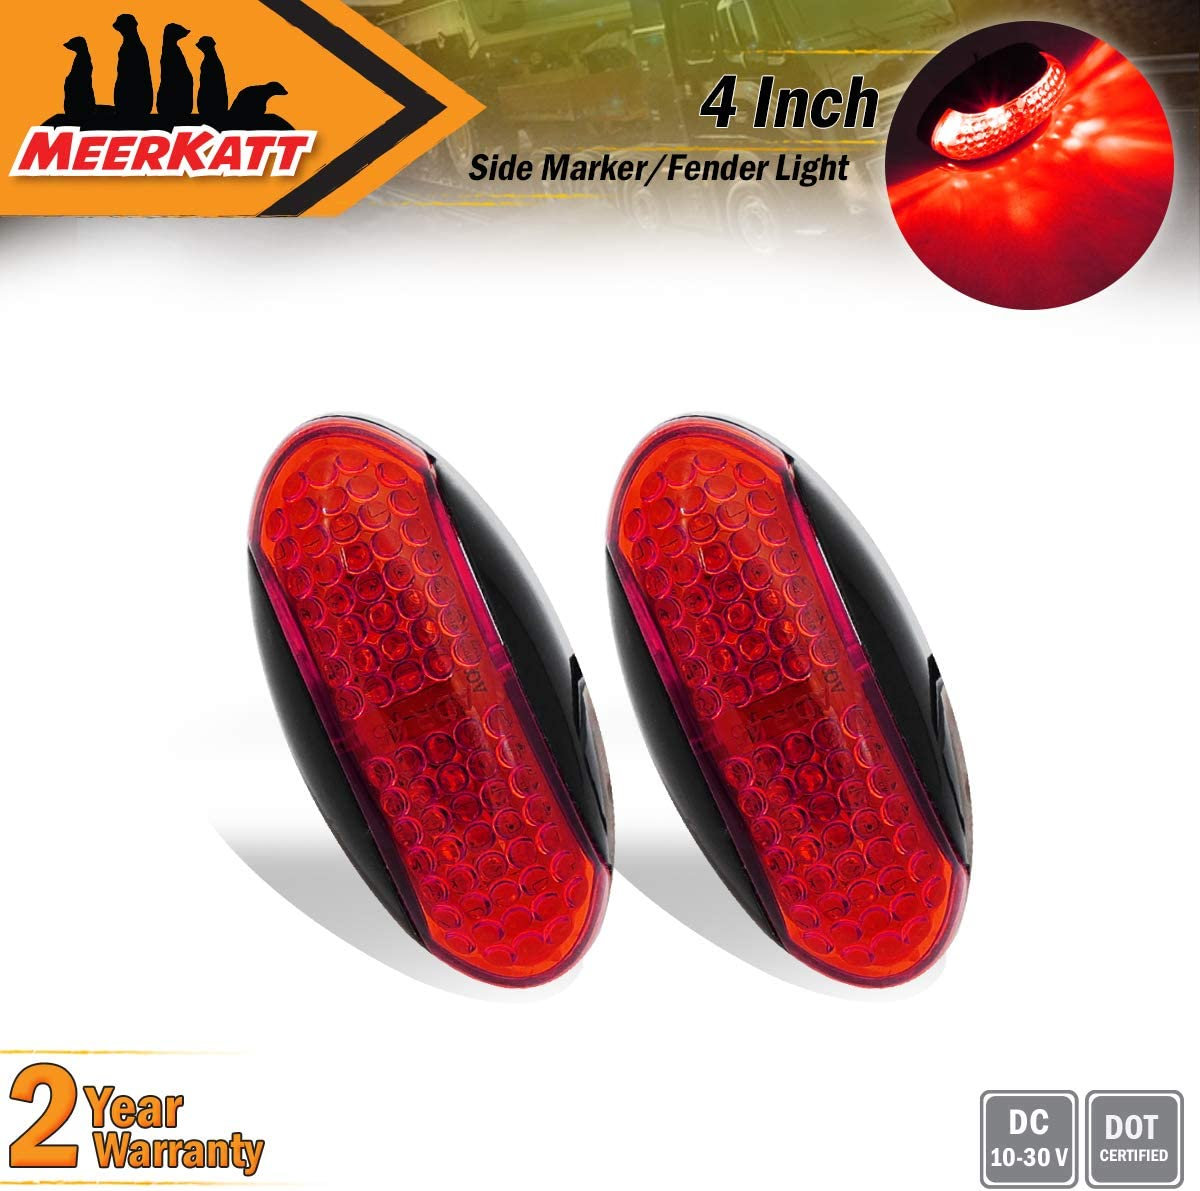 2 Red Small Side Marker Indicator Lights Sealed Mount Bulb for Caravan Van Lorry Trailer SUV Truck Car Jeep Van Pickup Multi-Voltage LED 10-30v DC Weatherproof NG Meerkatt Oval 2 Amber Pack of 4